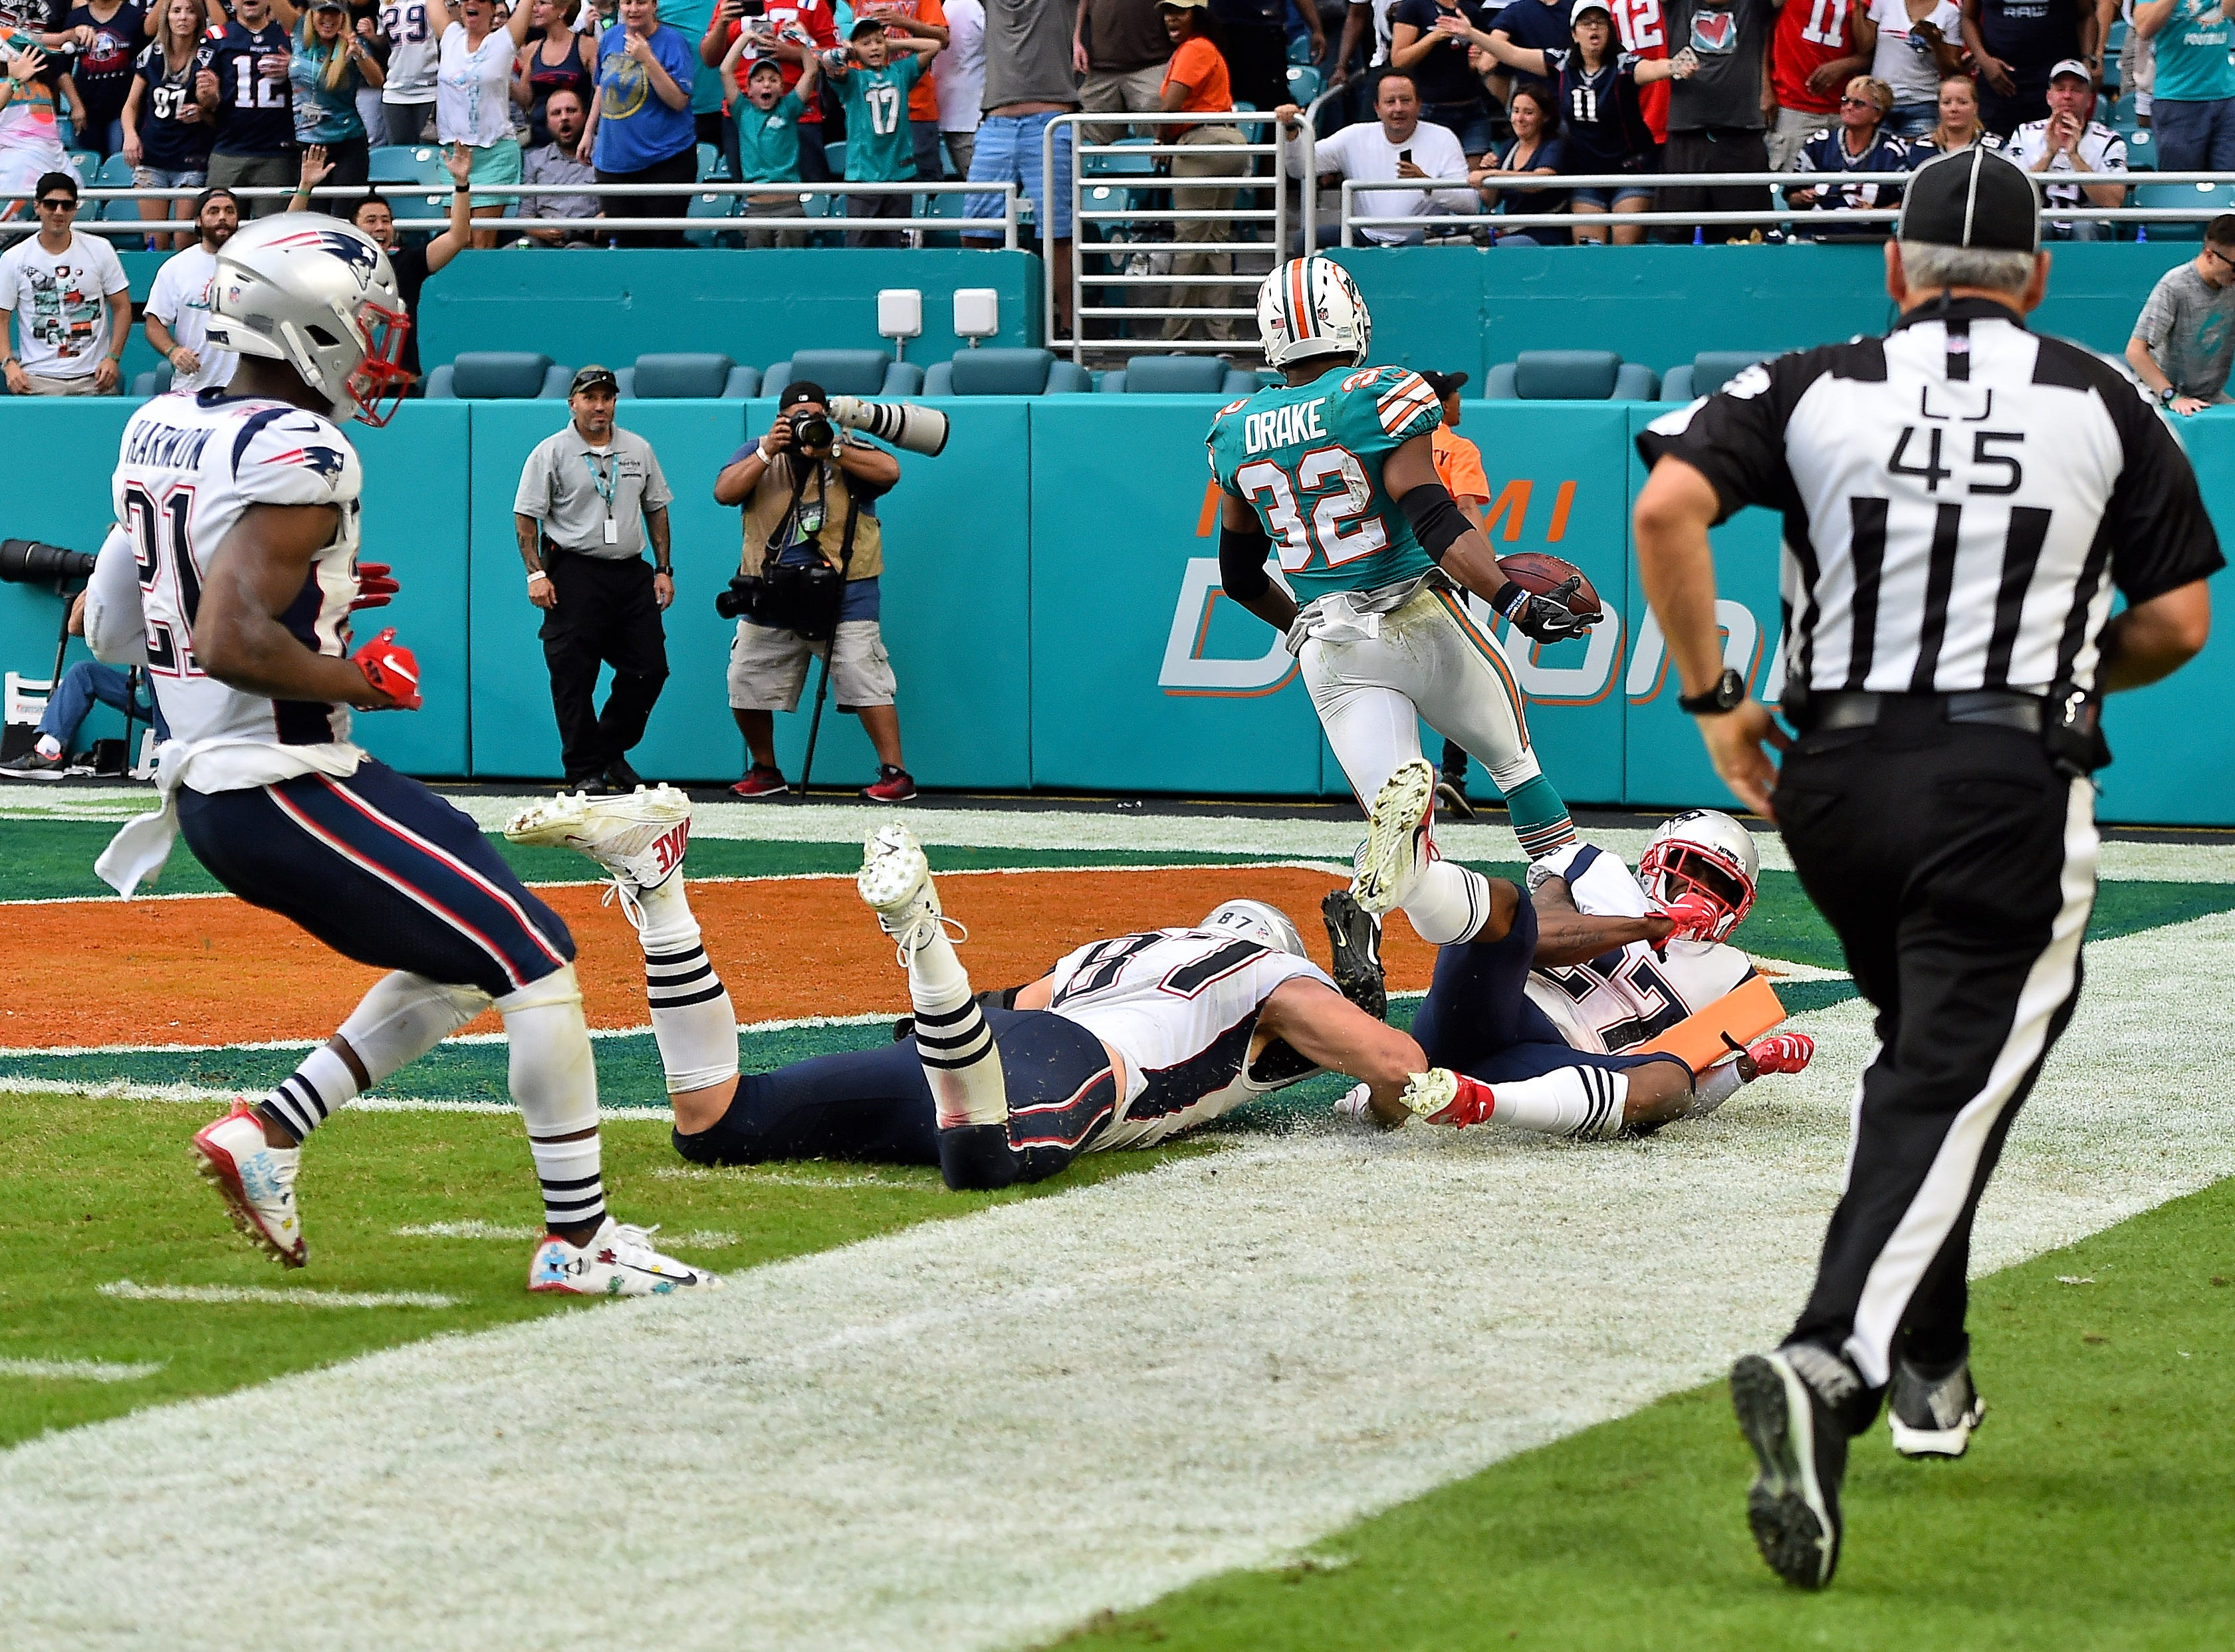 Dec. 9: Miami Dolphins running back Kenyan Drake scores a miraculous, multi-lateral touchdown to defeat the New England Patriots at Hard Rock Stadium.